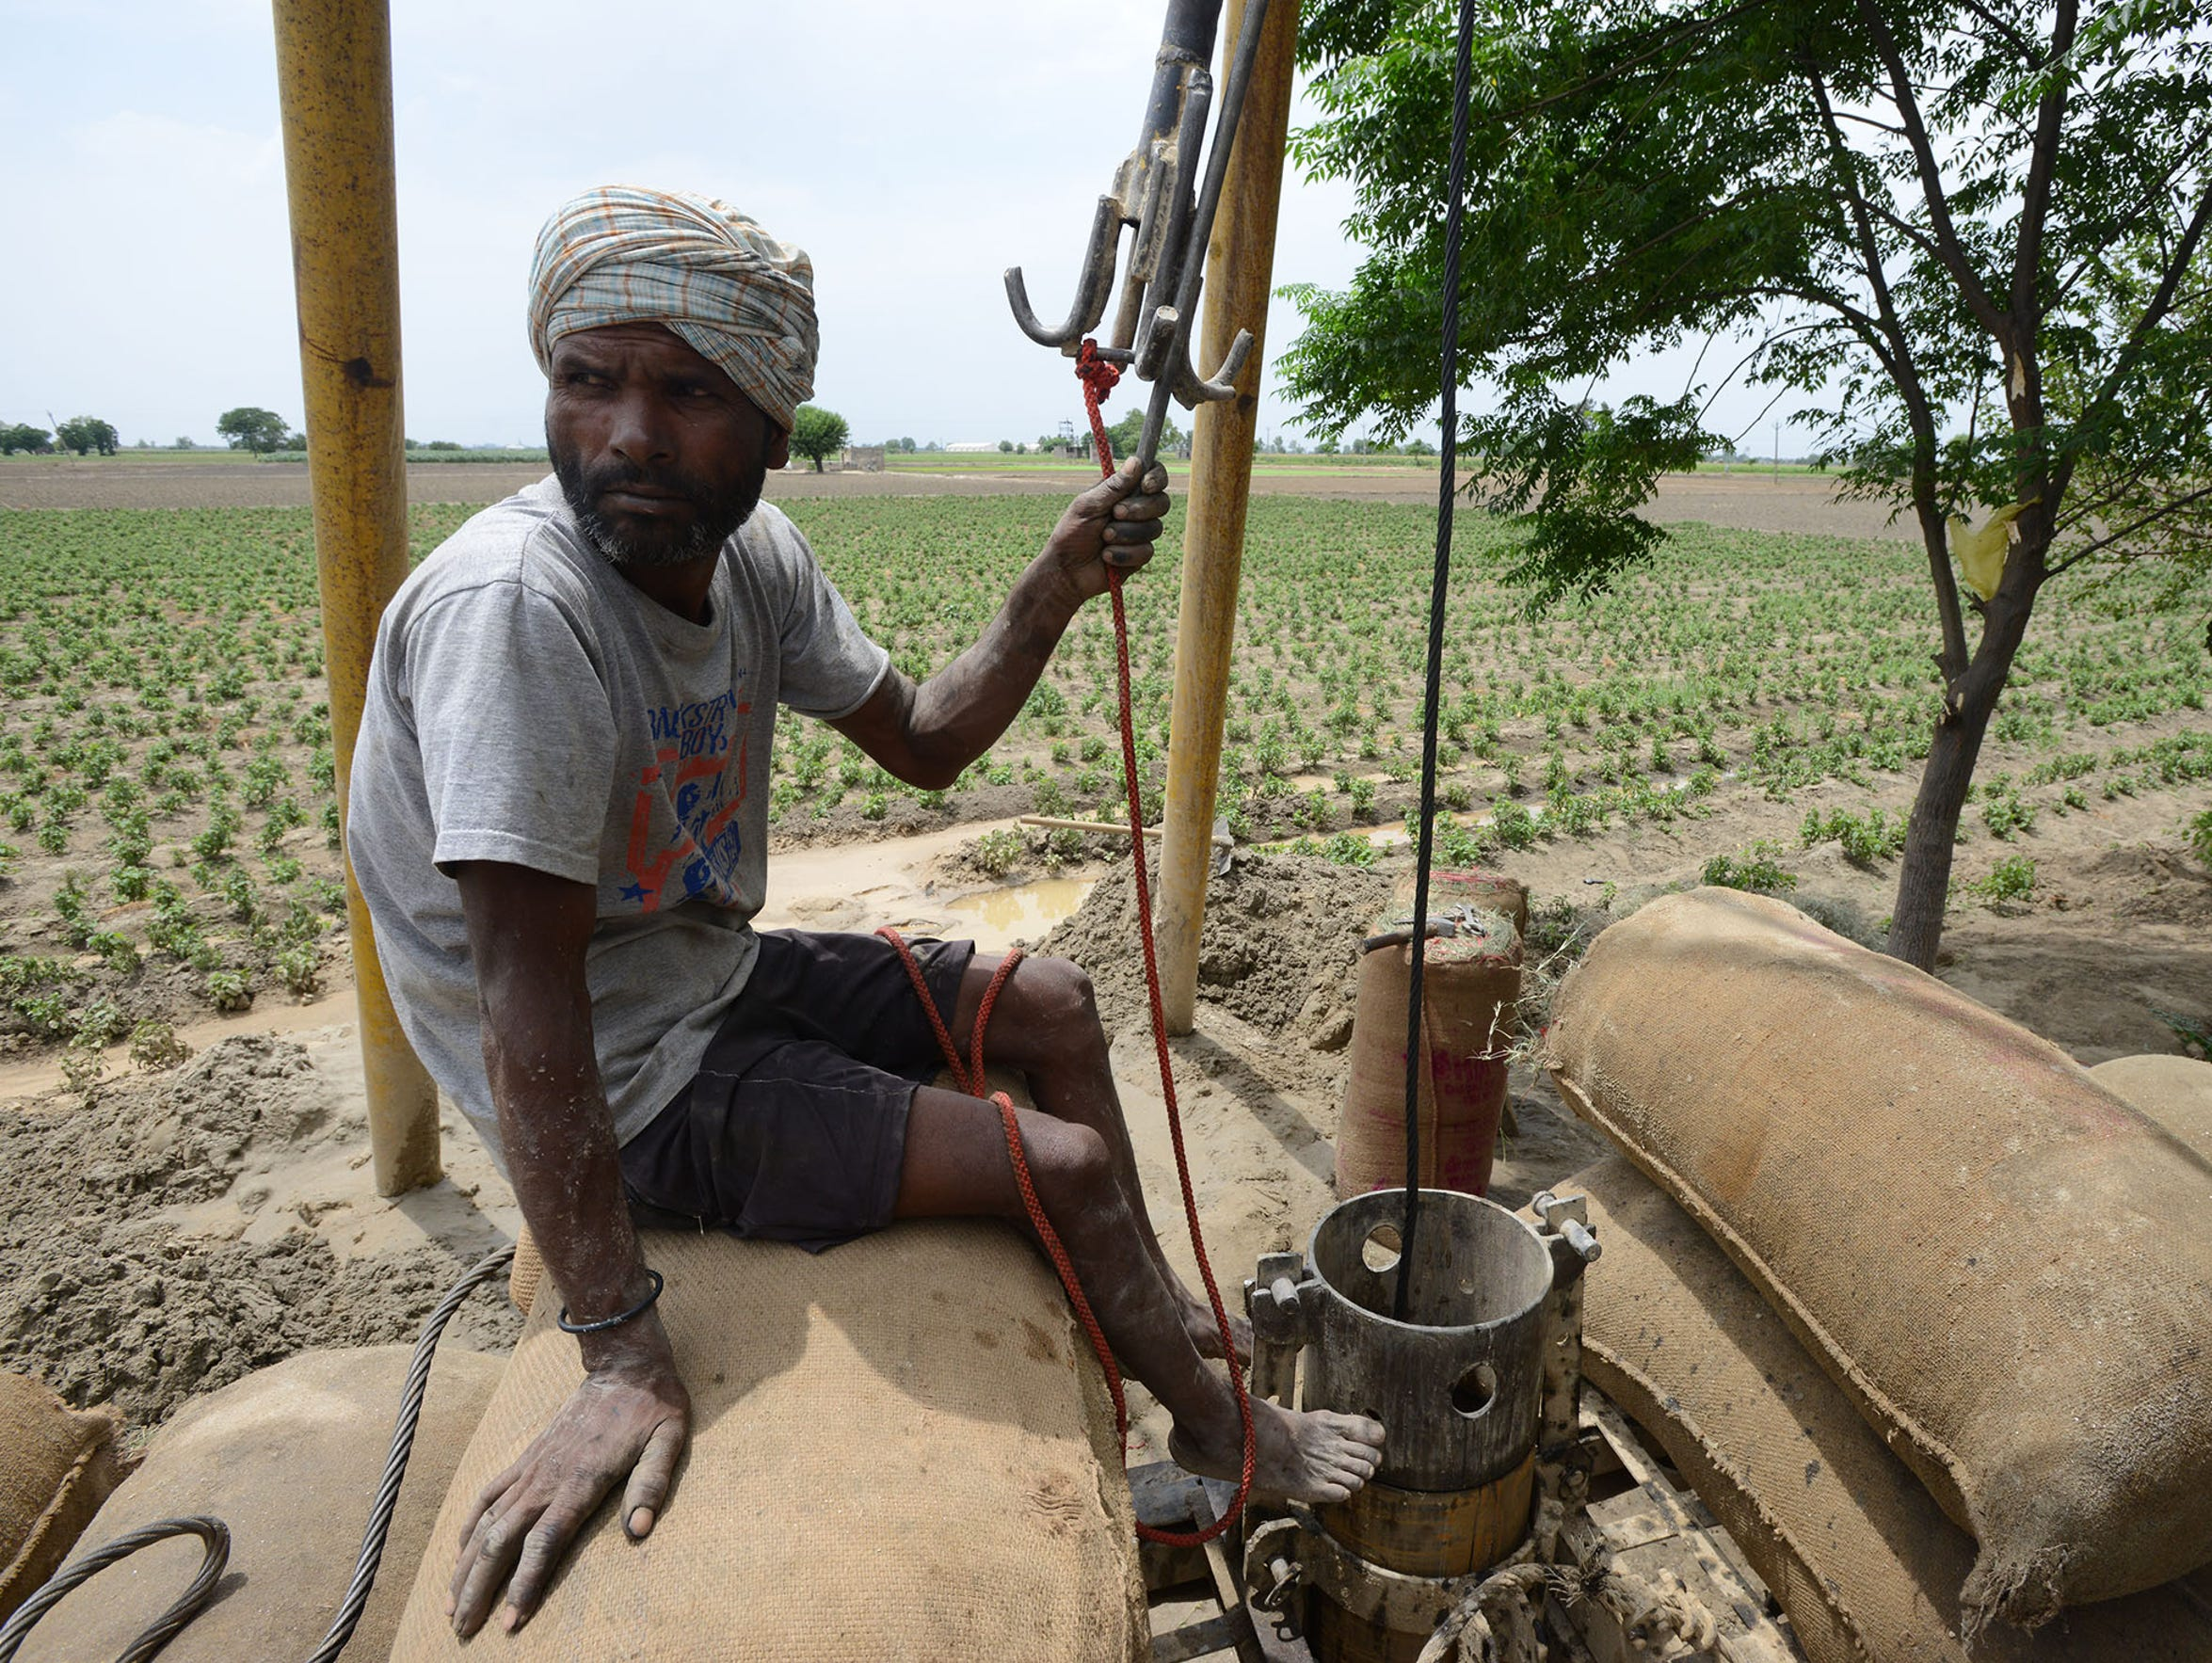 Santar Pal pauses from while digging a new tube well